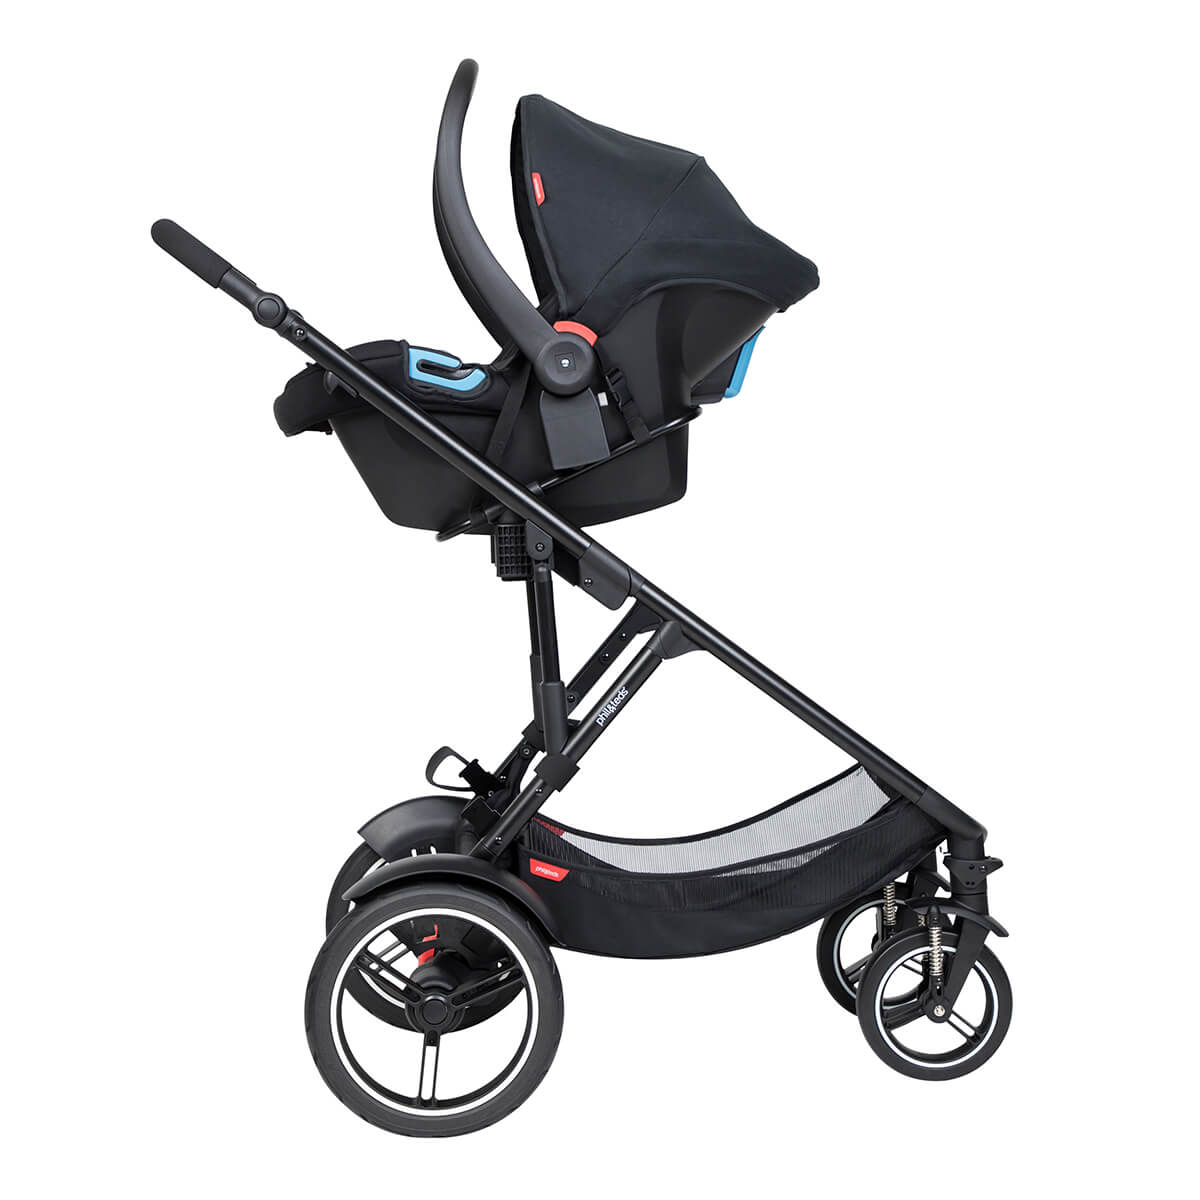 https://cdn.accentuate.io/4509529210968/19272668119128/philteds-voyager-buggy-with-travel-system-in-parent-facing-mode-v1626484641091.jpg?1200x1200